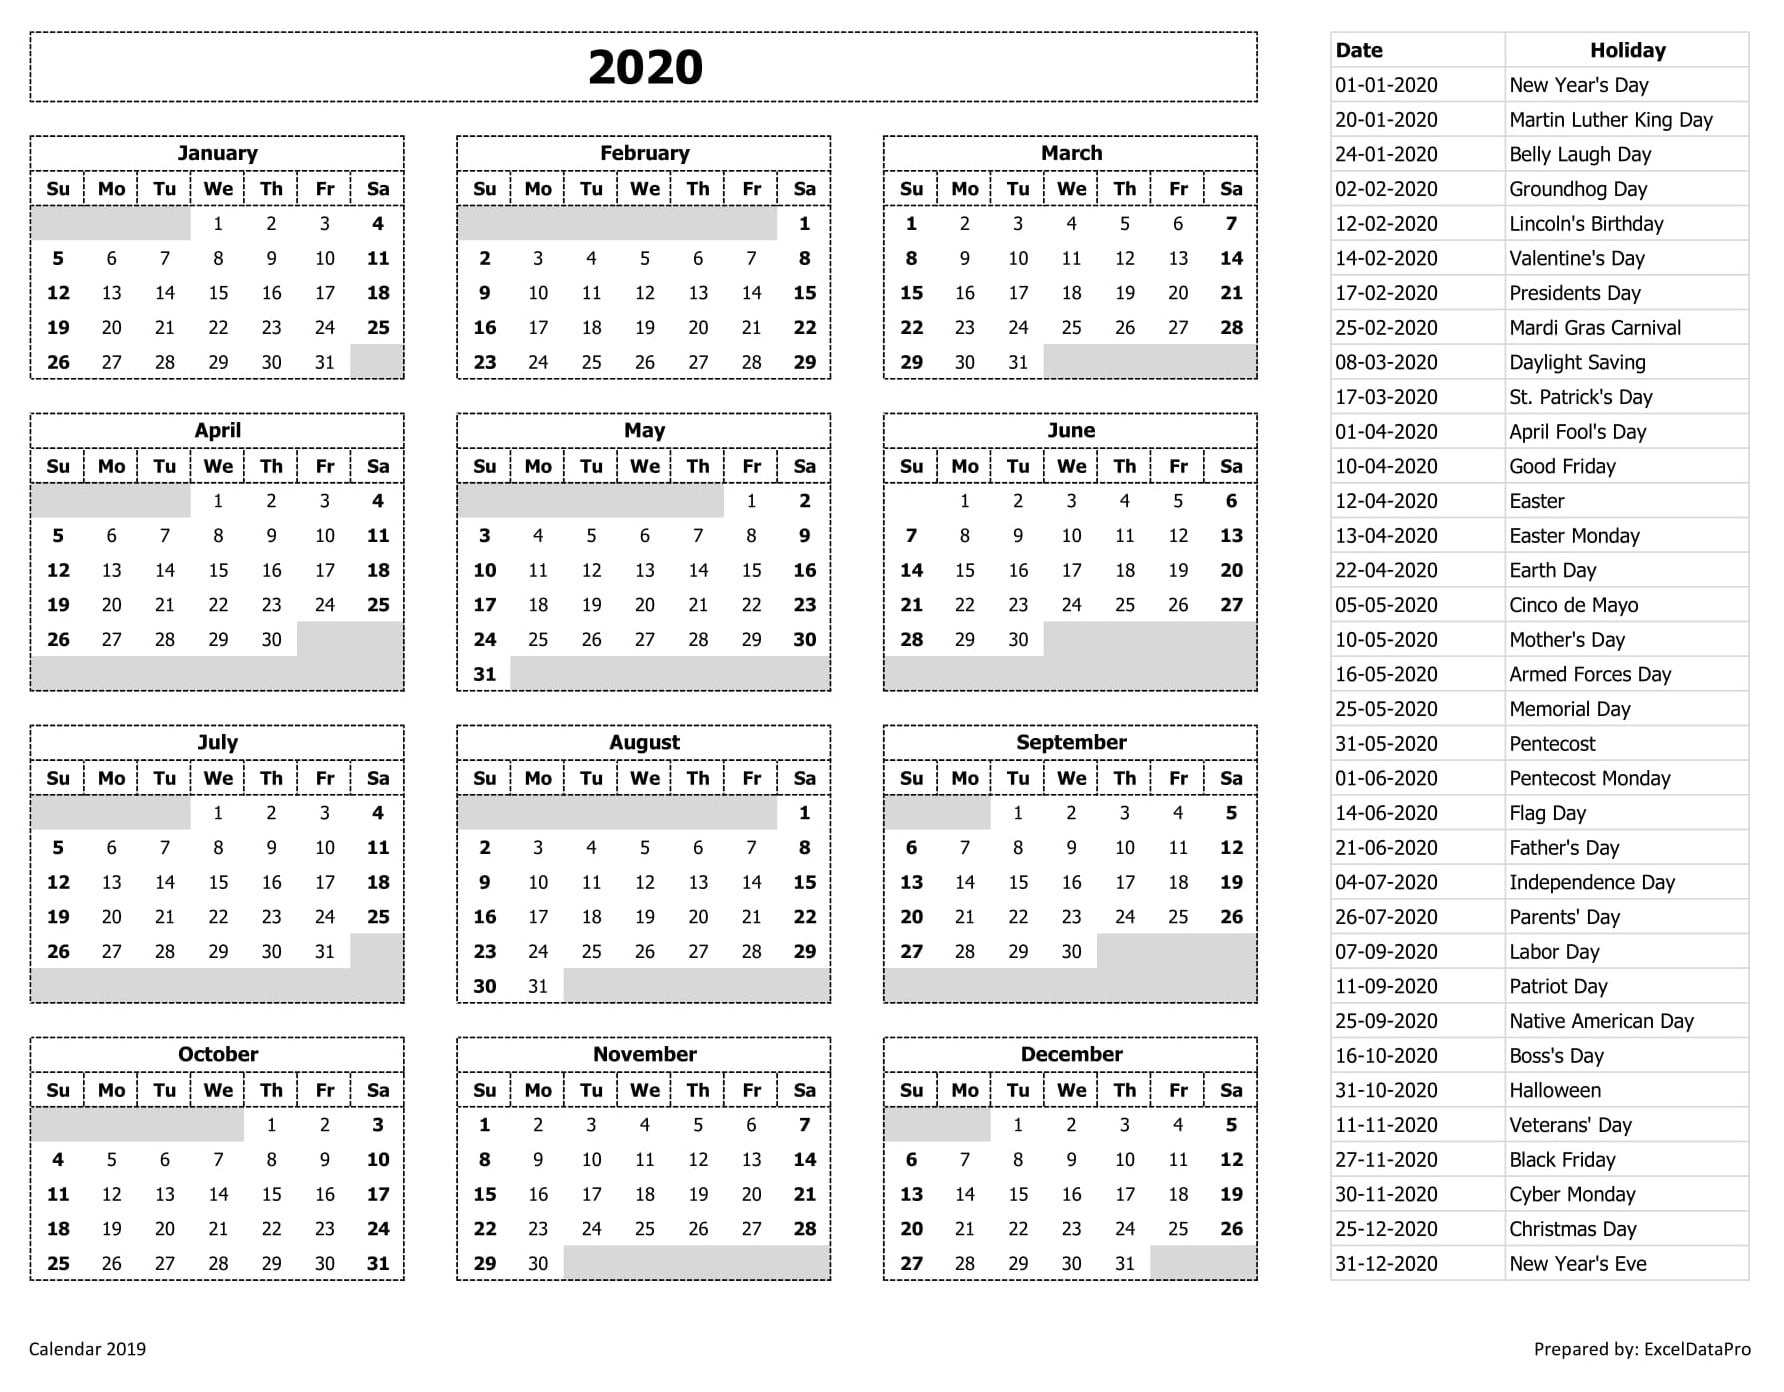 2020 Calendar Excel Templates, Printable Pdfs & Images Remarkable 2020 Calendar India Pdf